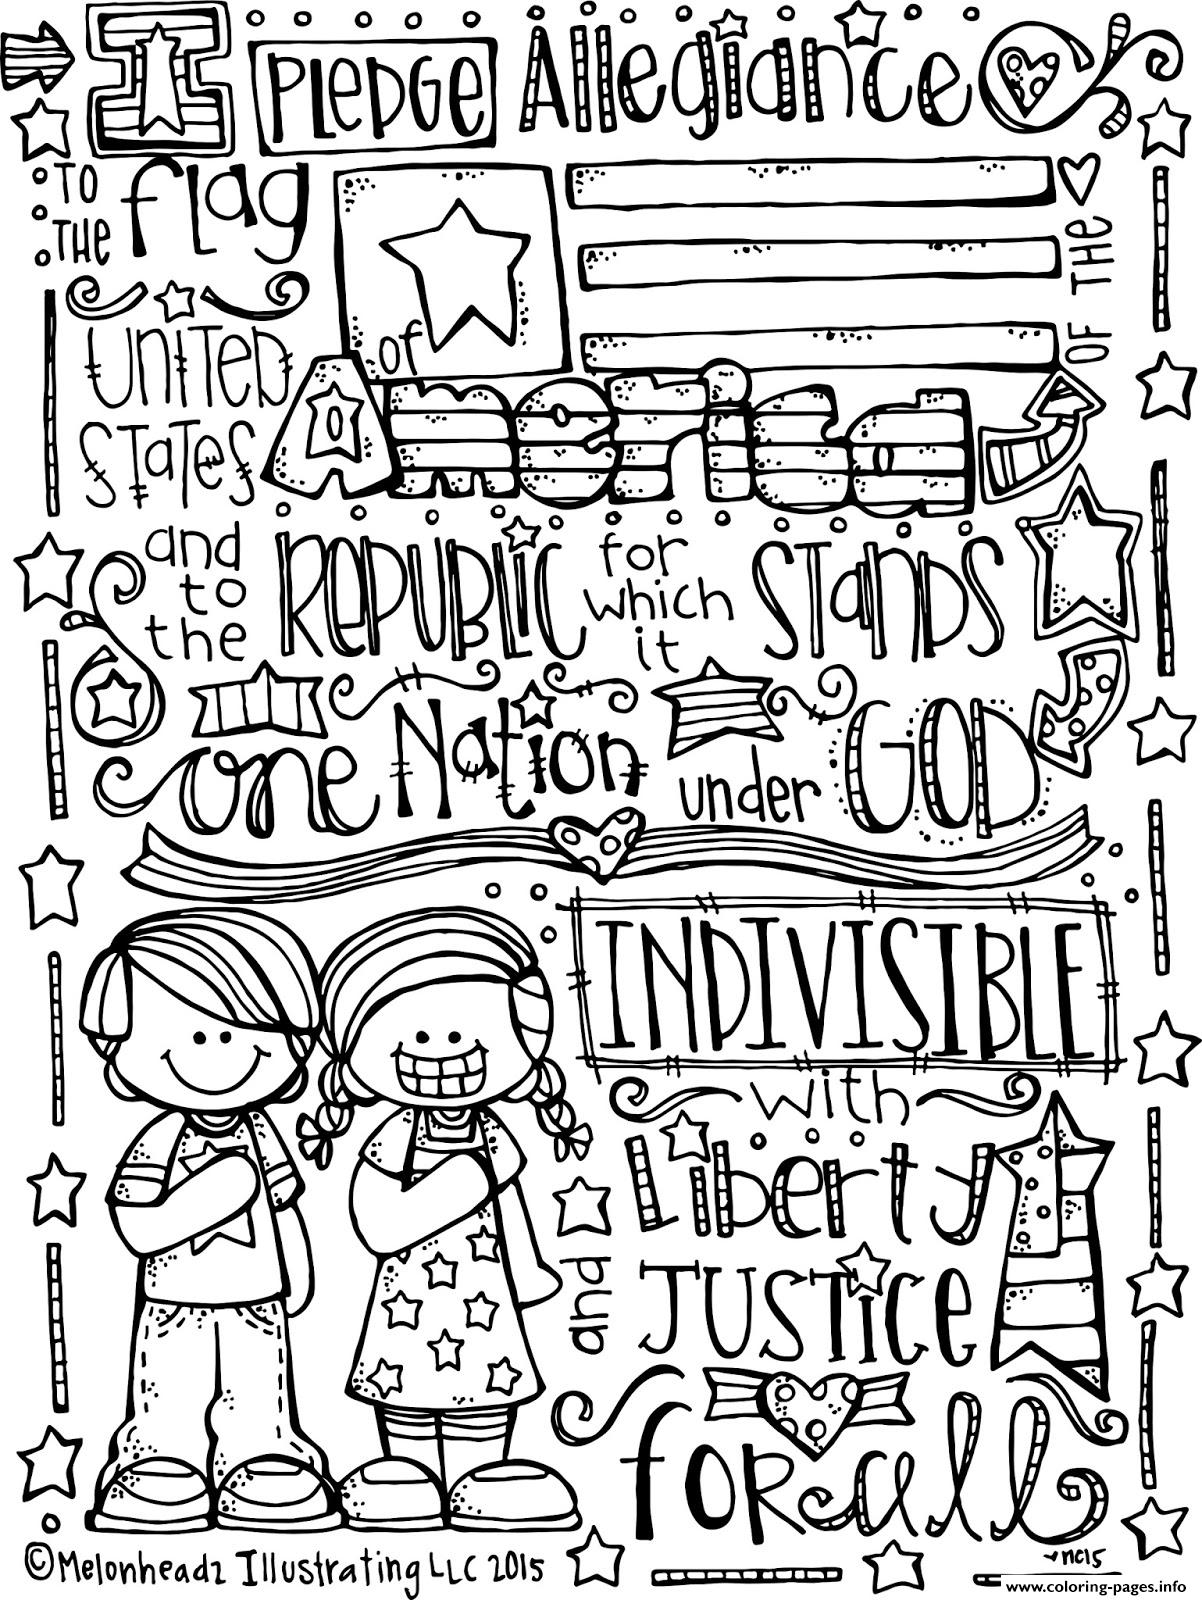 Pledge Of Allegiance Melonheadz Illustrating Llc 2015 Bw Coloring 2015 Coloring Pages